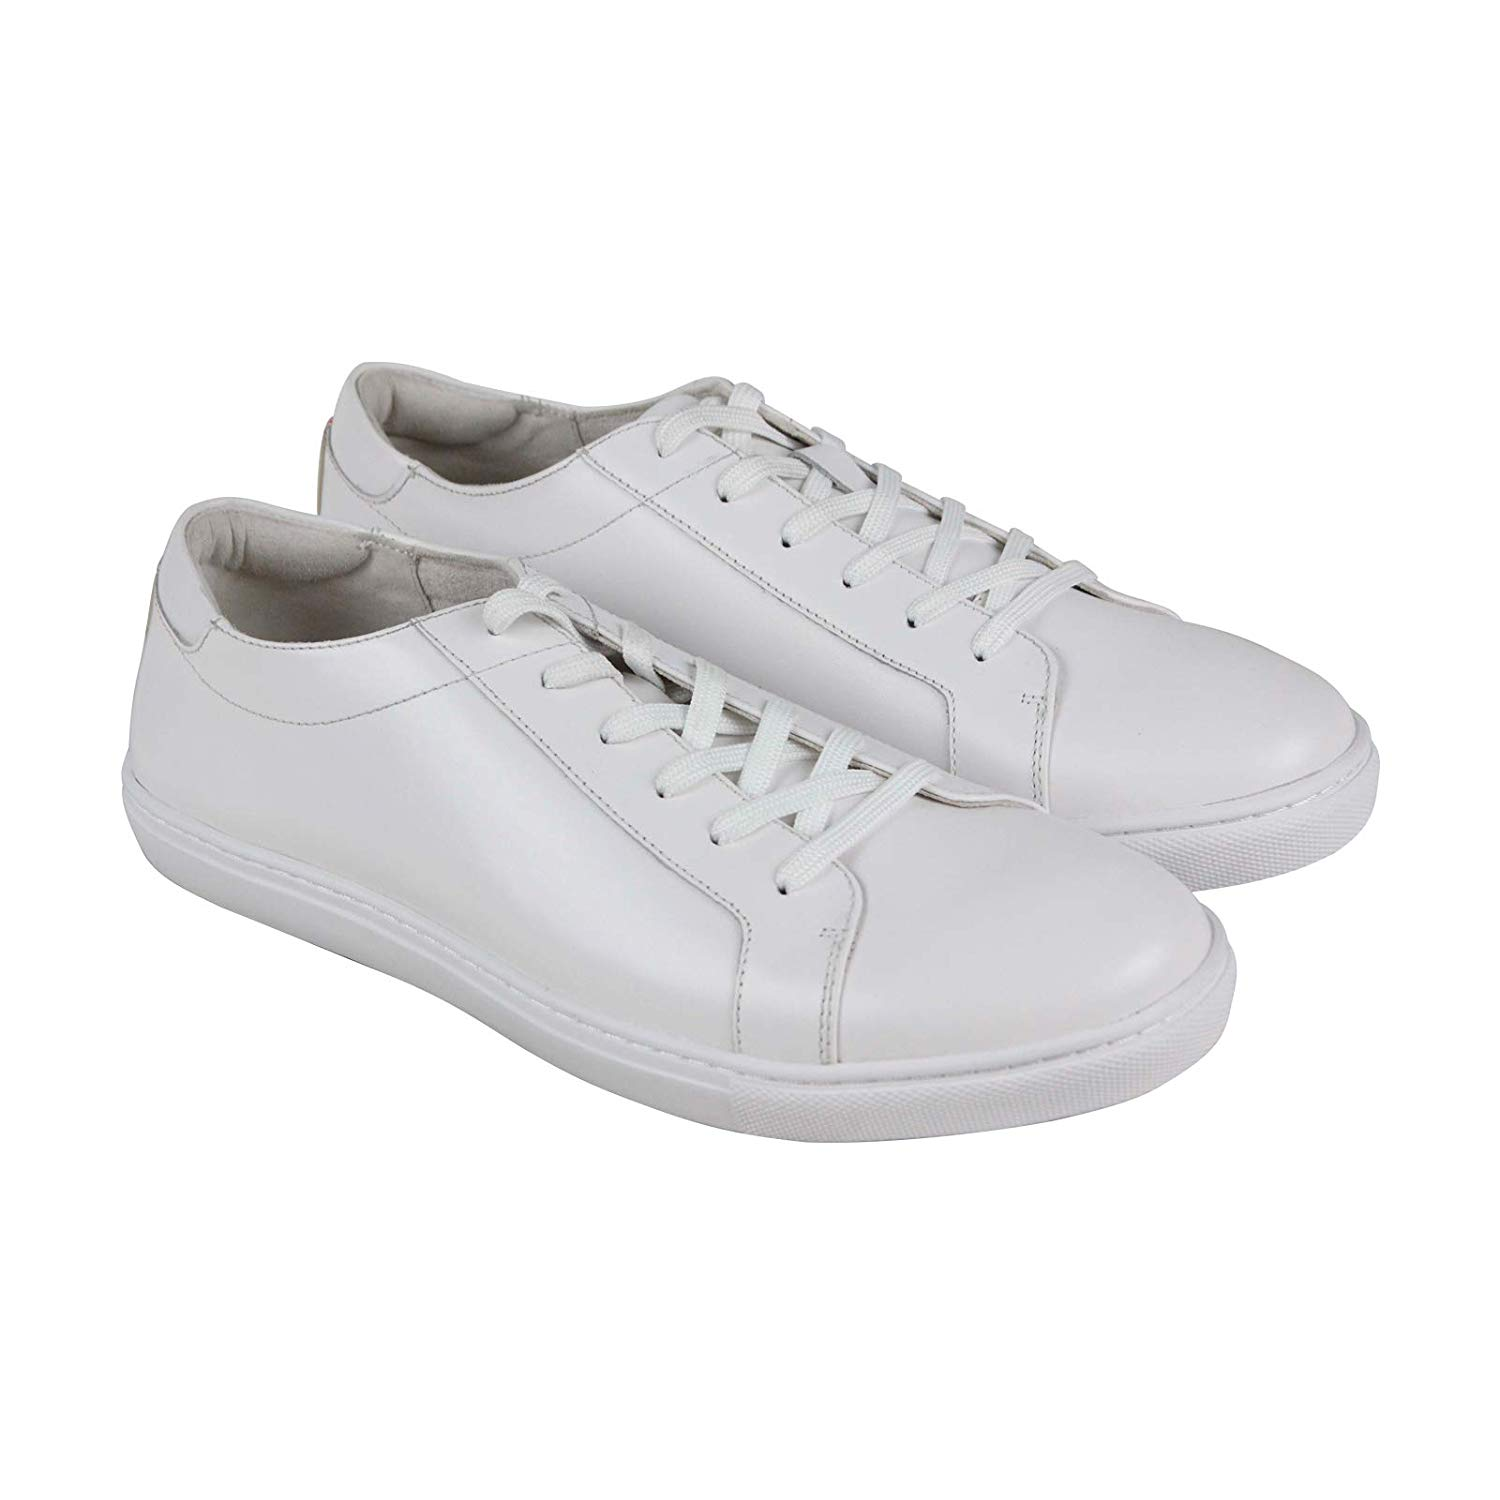 kenneth cole white sneaker